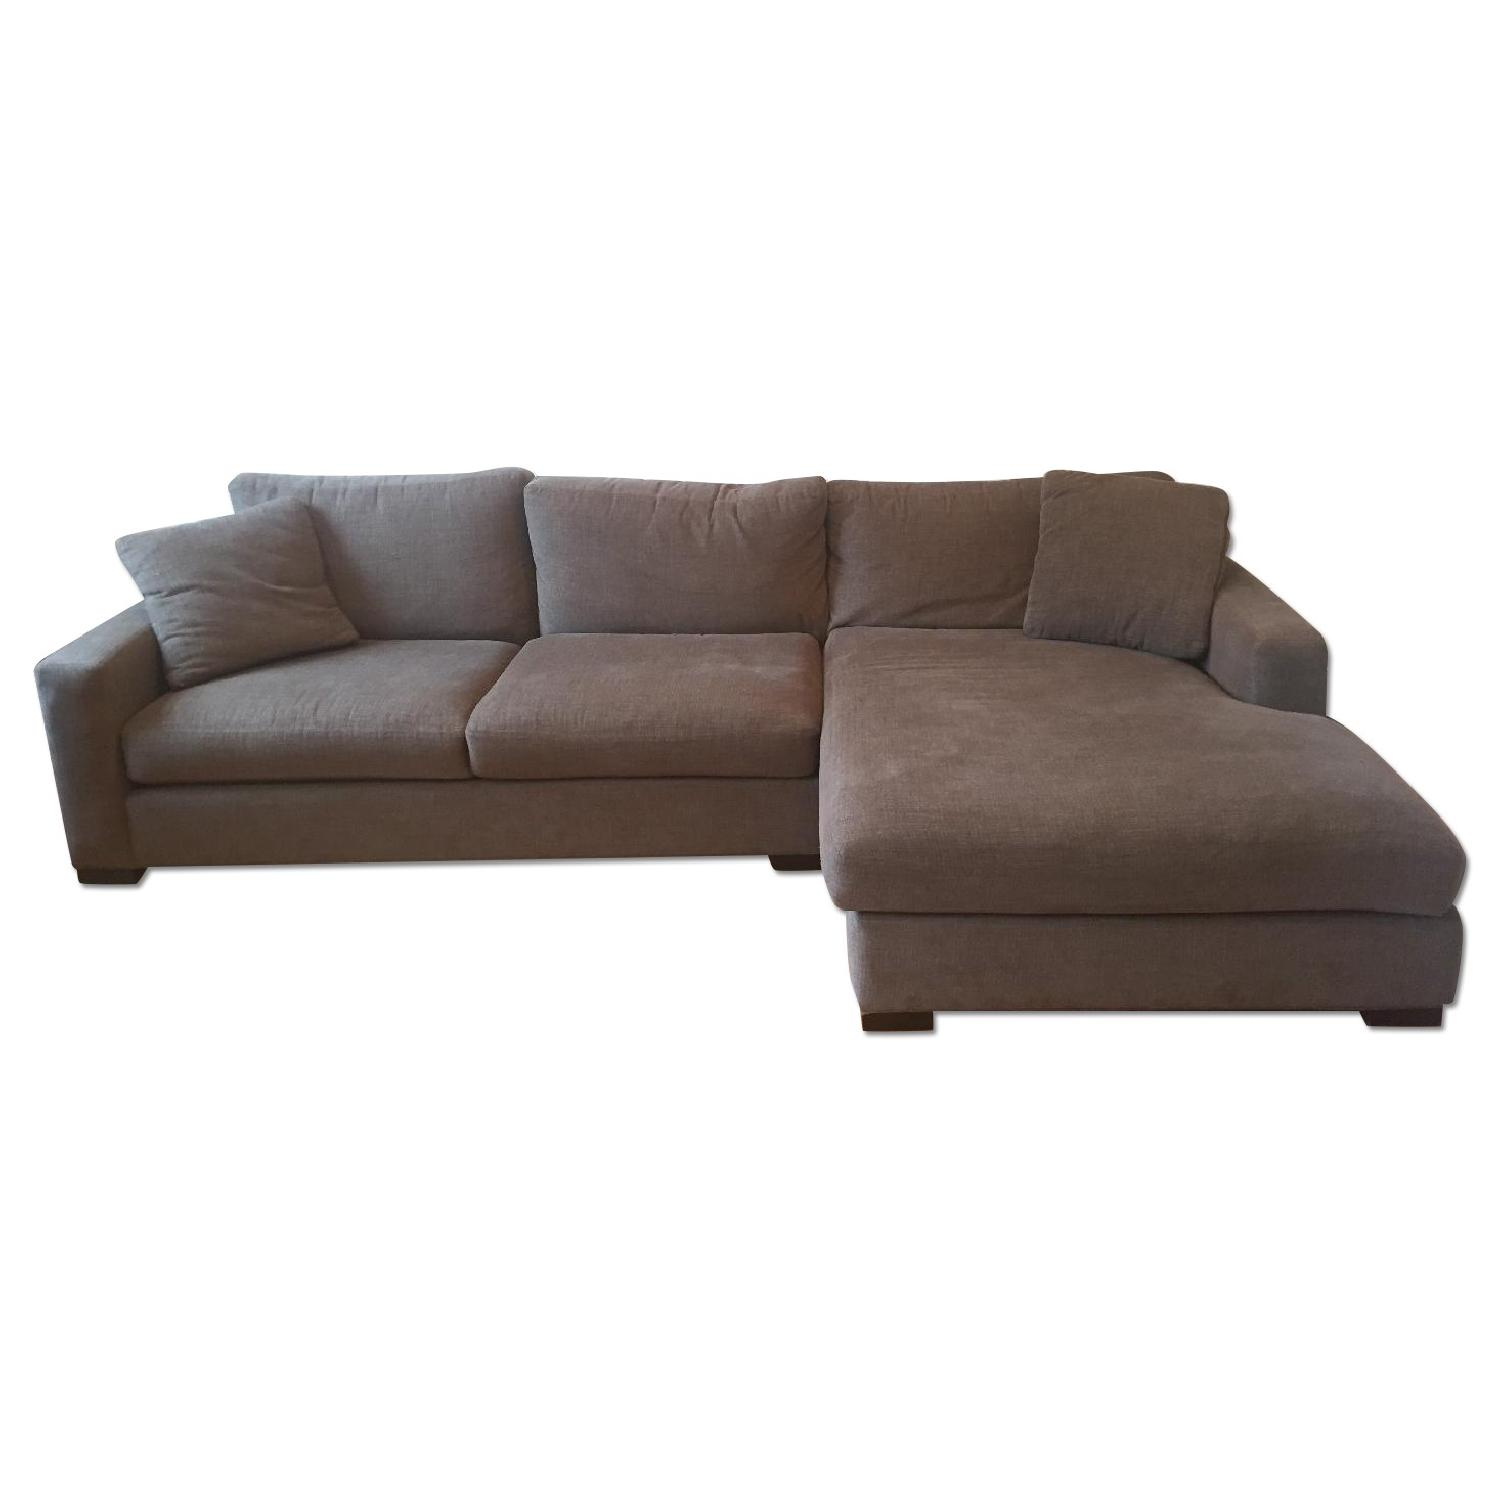 room and board metro sleeper sofa how to remove hair dye stain from leather sectional aptdeco